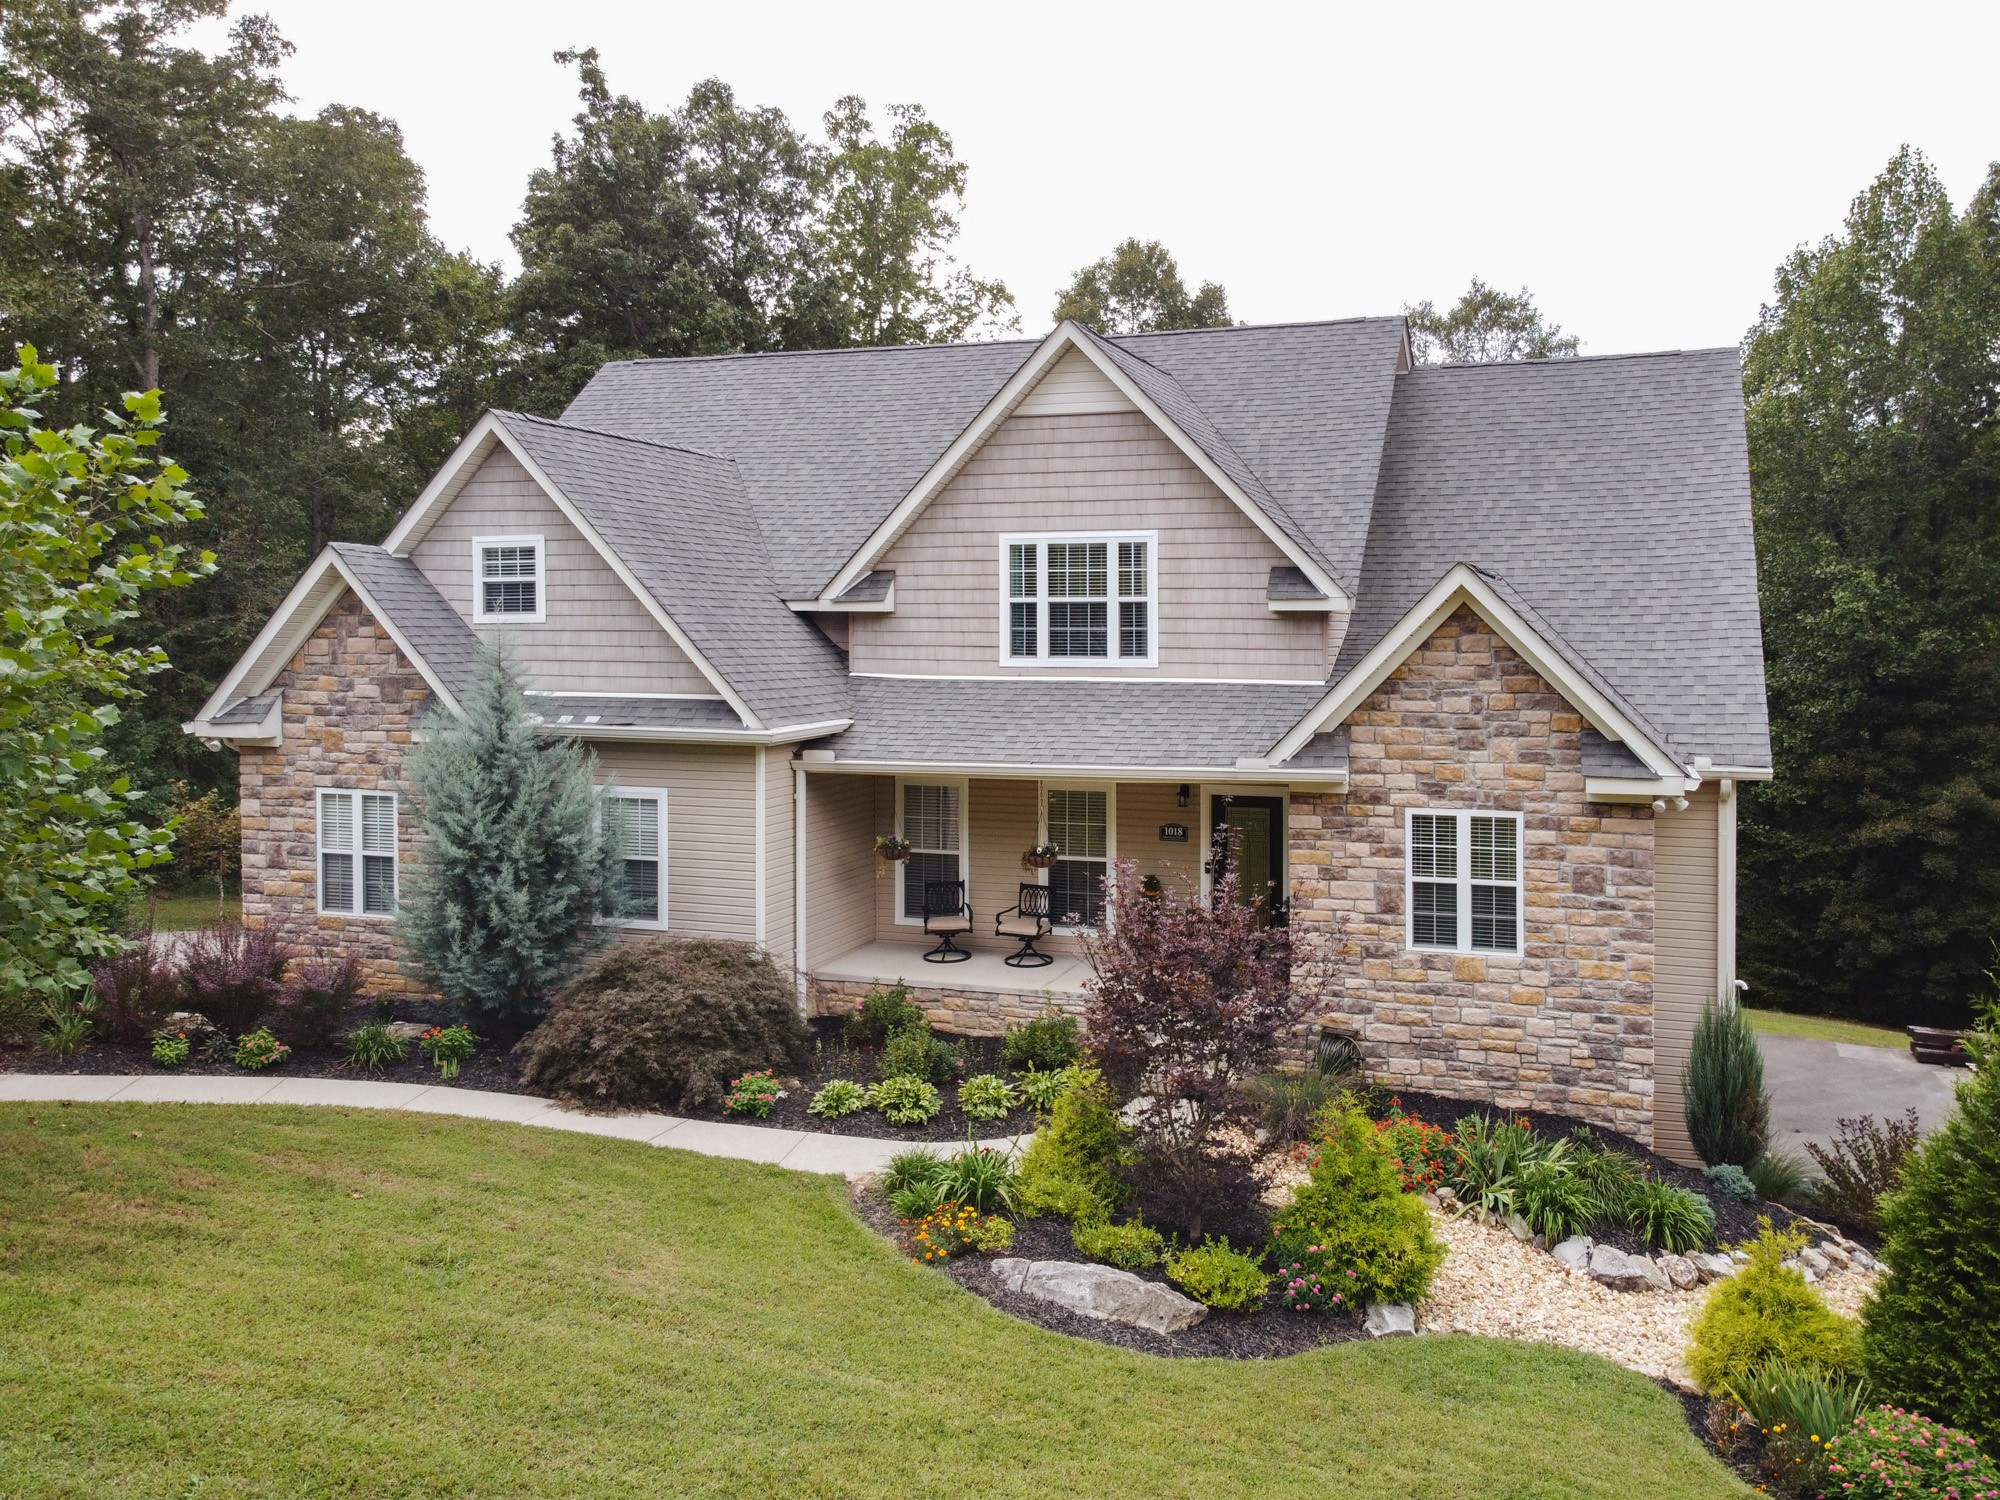 1018 Johnston Dr Property Photo - White Bluff, TN real estate listing